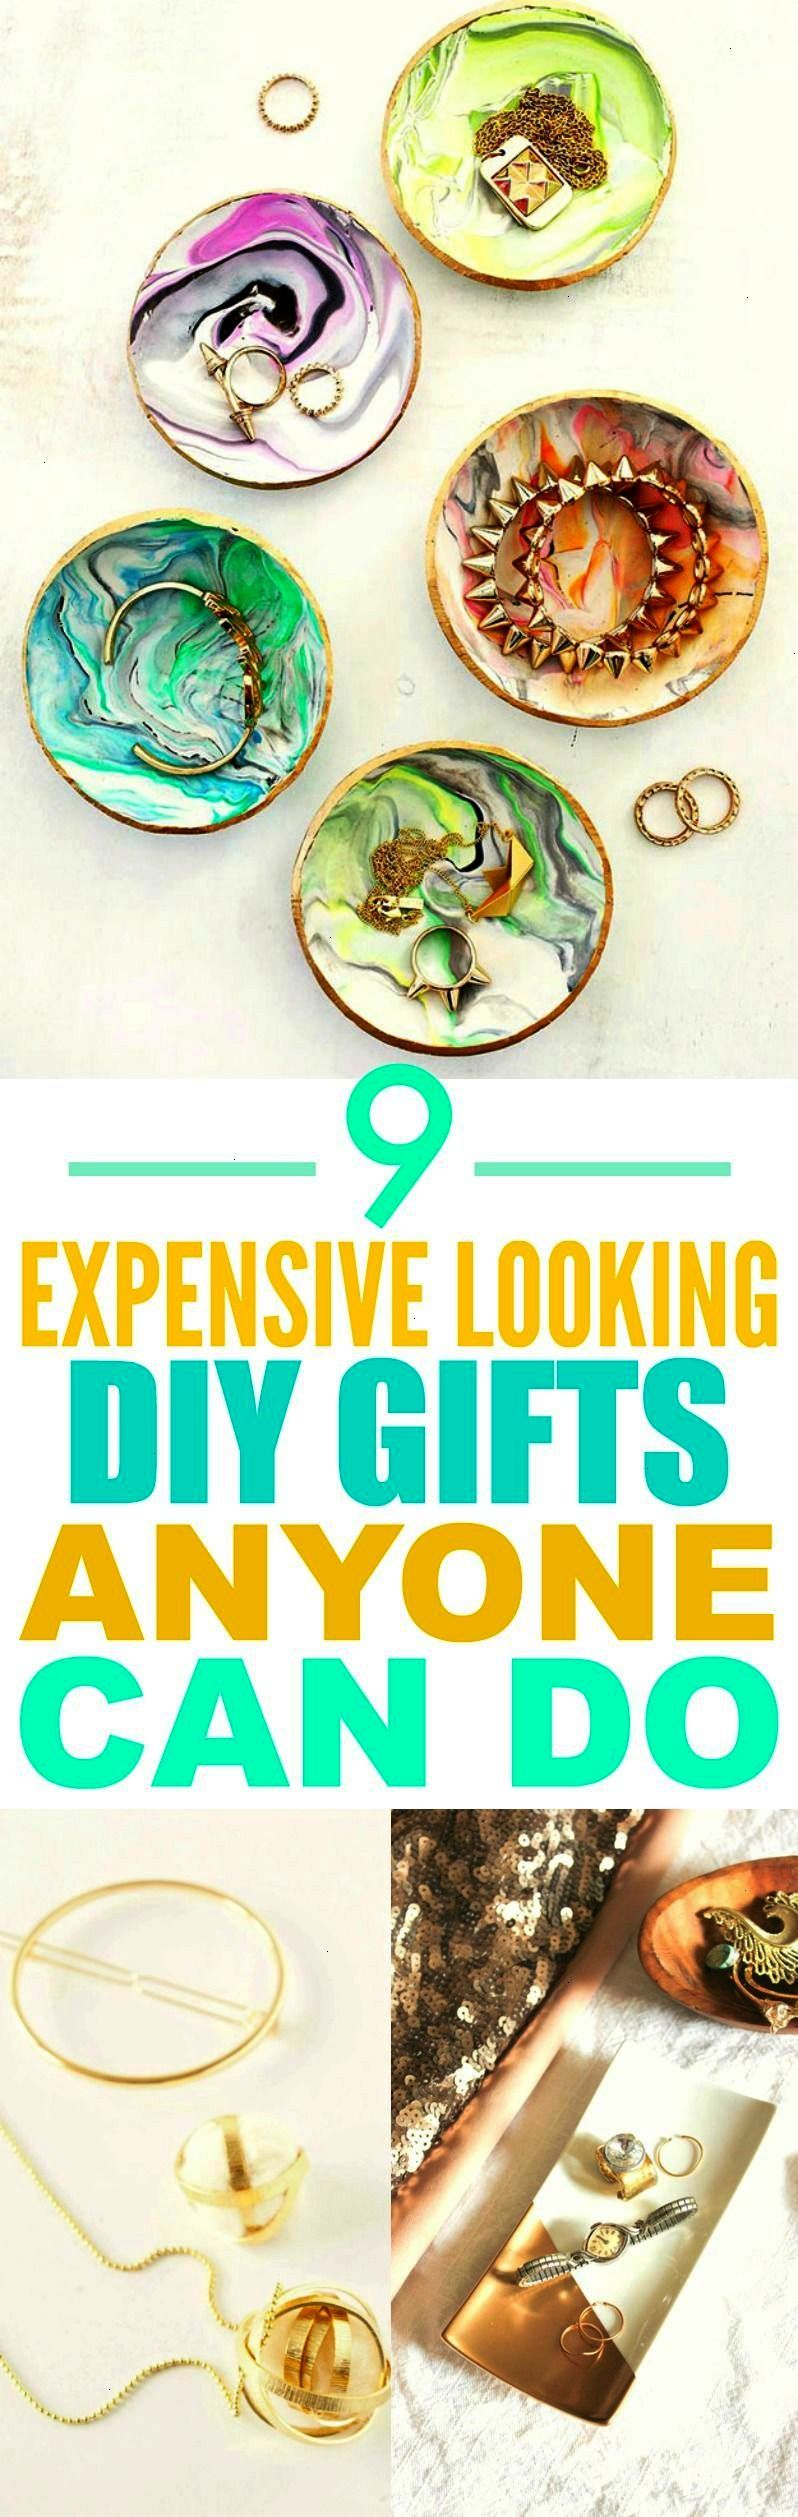 These 9 Expensive Looking Diy Gifts Are The Best Im